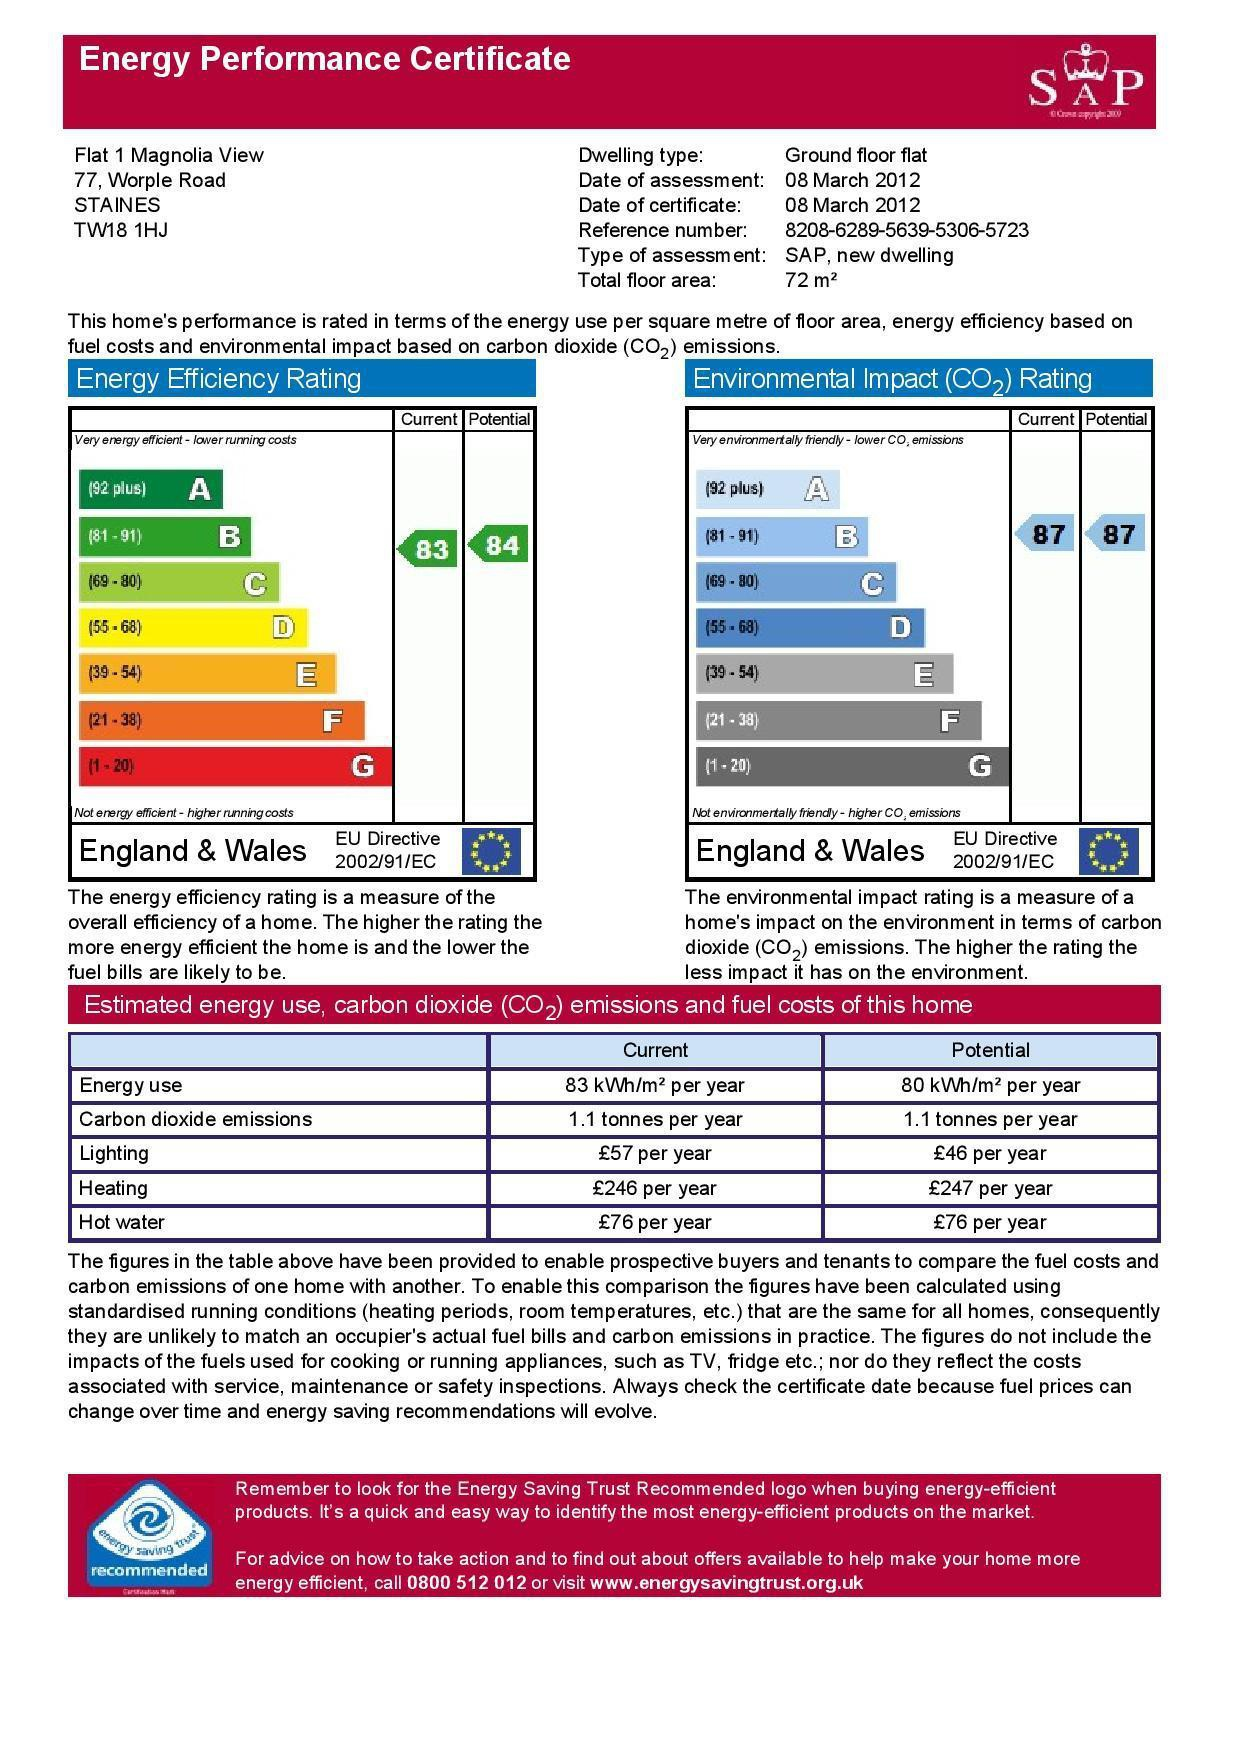 EPC Graph for 1 Magnolia View, Worple Road, Staines-Upon-Thames, Middlesex TW18 1HJ